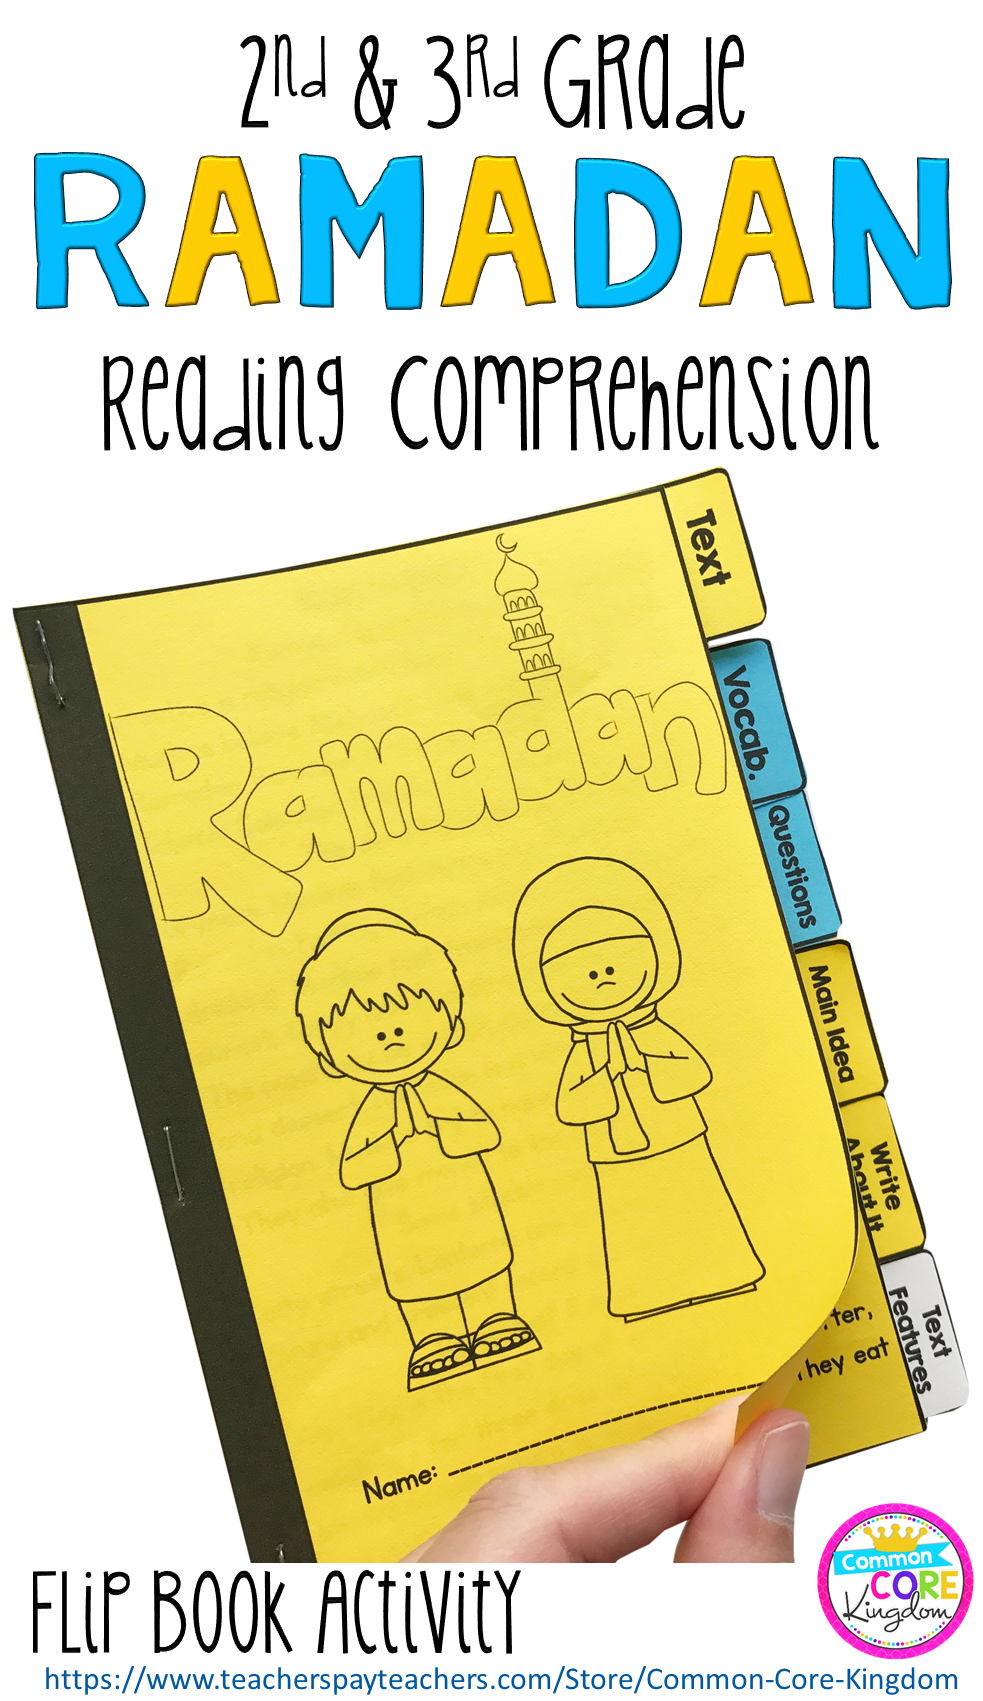 Comparing Whole Numbers Worksheet Word Ramadan Reading Comprehension Flip Book Activity For Nd  Rd  Congruent Angles Worksheet Word with Counting By 2 Worksheets Ramadan Reading Comprehension Flip Book Activities Nd  Rd Grade Math Worksheets Times Tables Excel